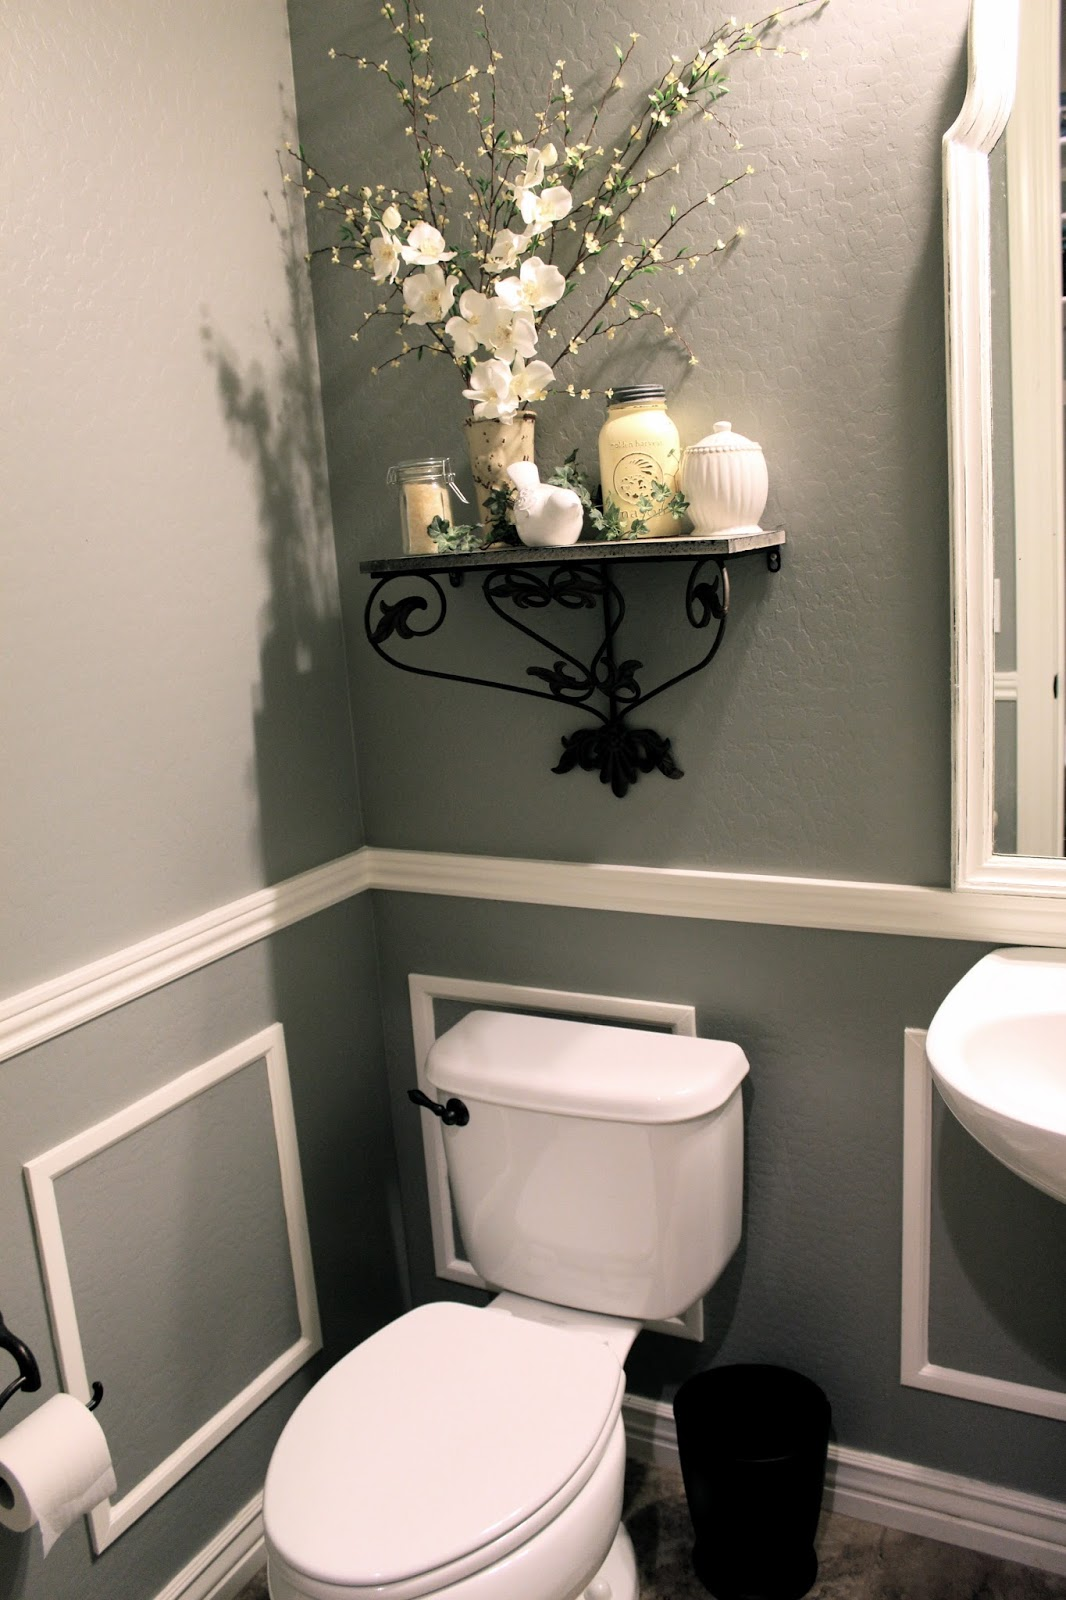 Little bit of paint thrifty thursday bathroom reveal Toilet room design ideas